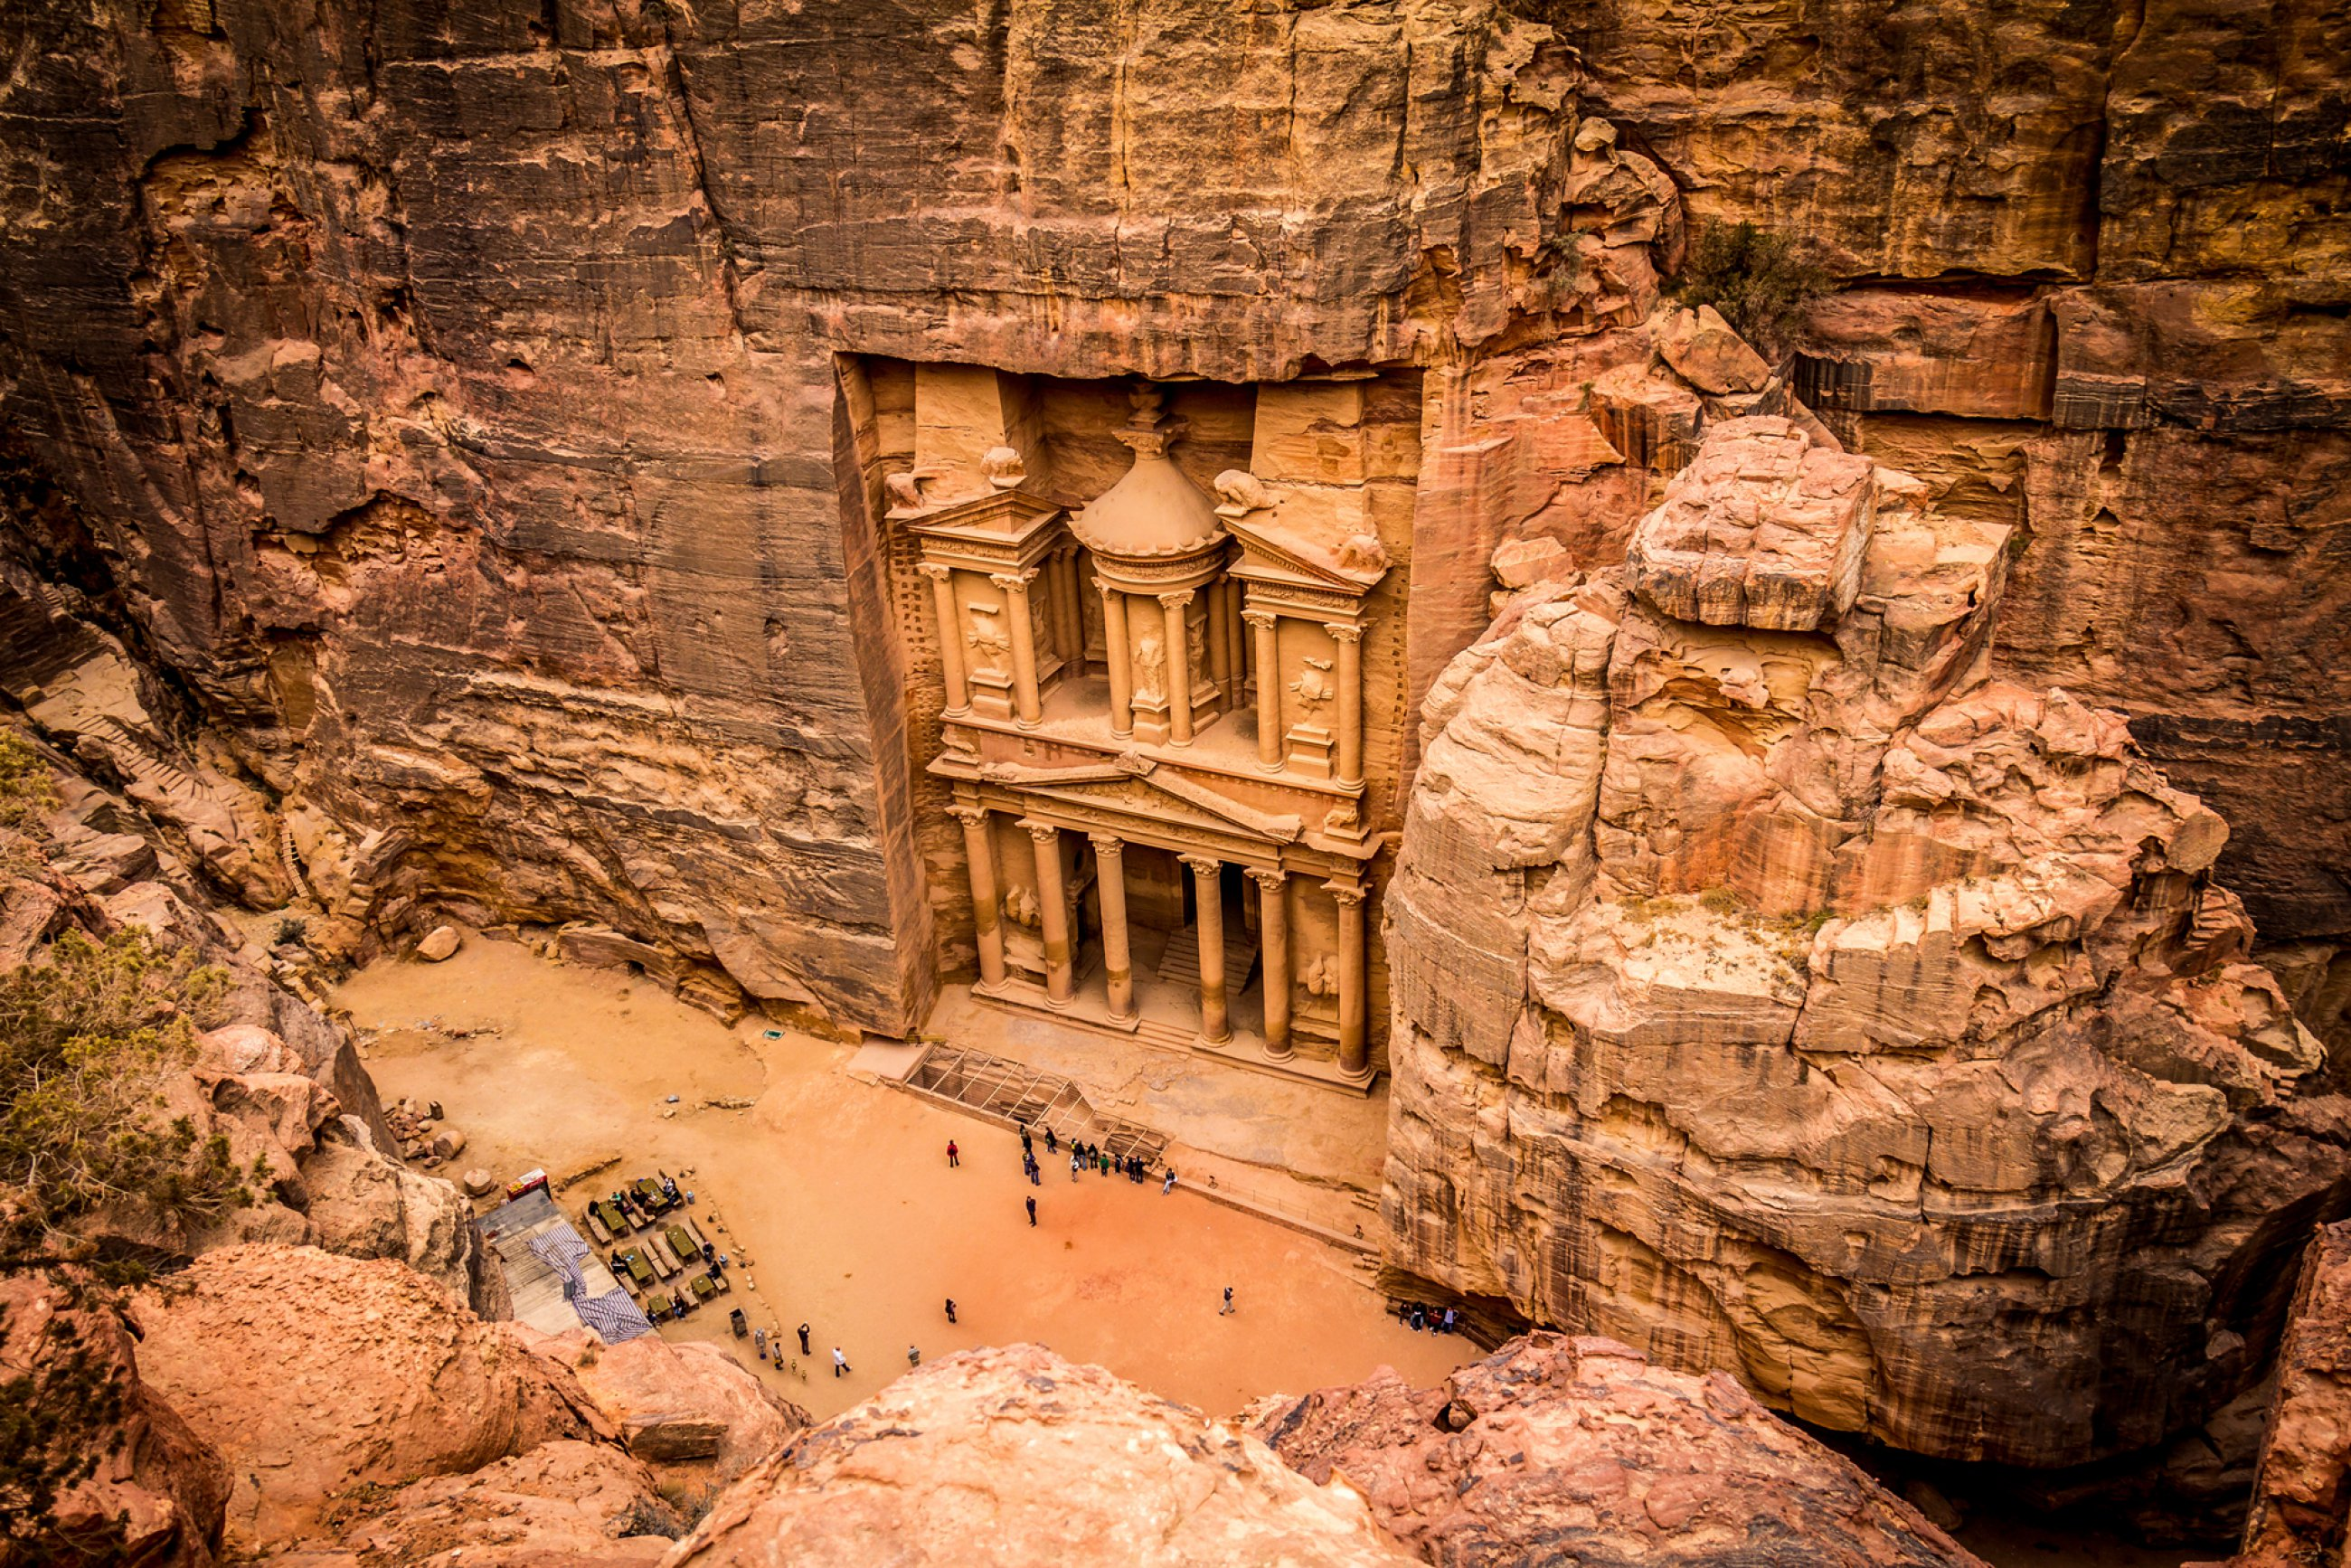 https://bubo.sk/uploads/galleries/7386/jordansko-petra.jpg